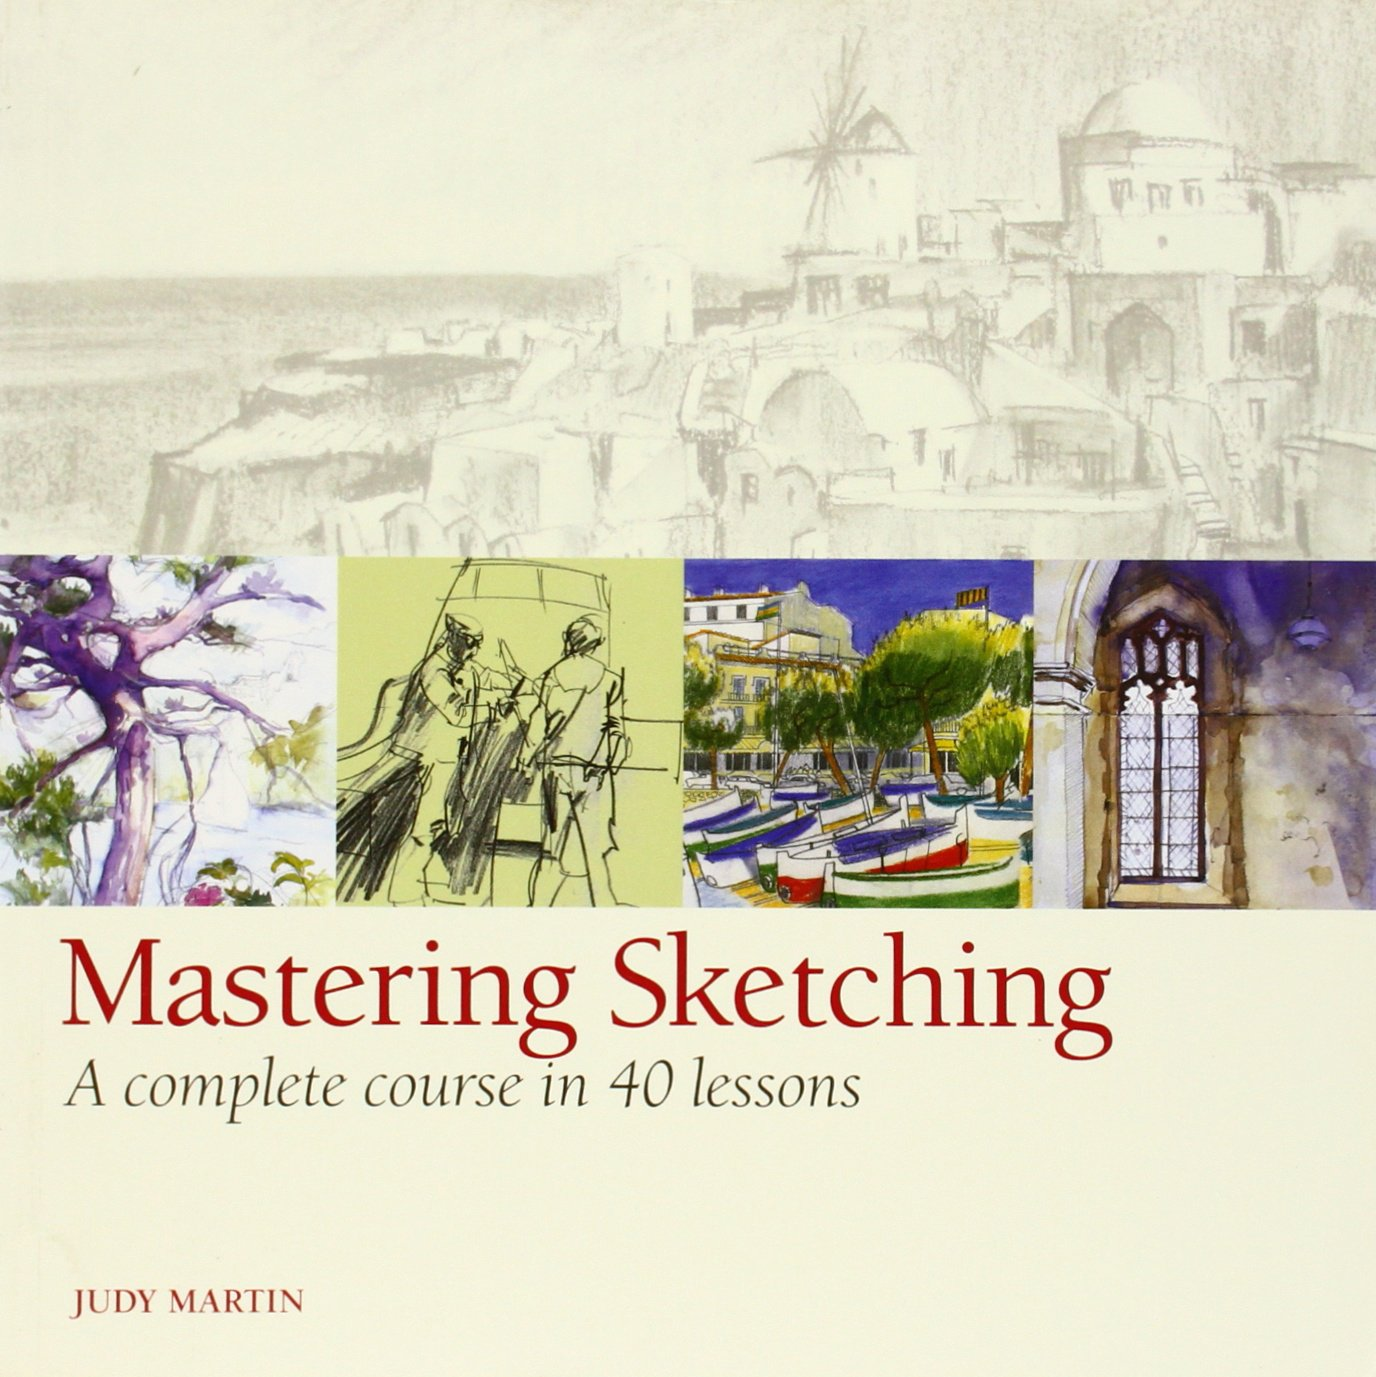 Download Mastering Sketching: A Complete Course in 40 Lessons PDF